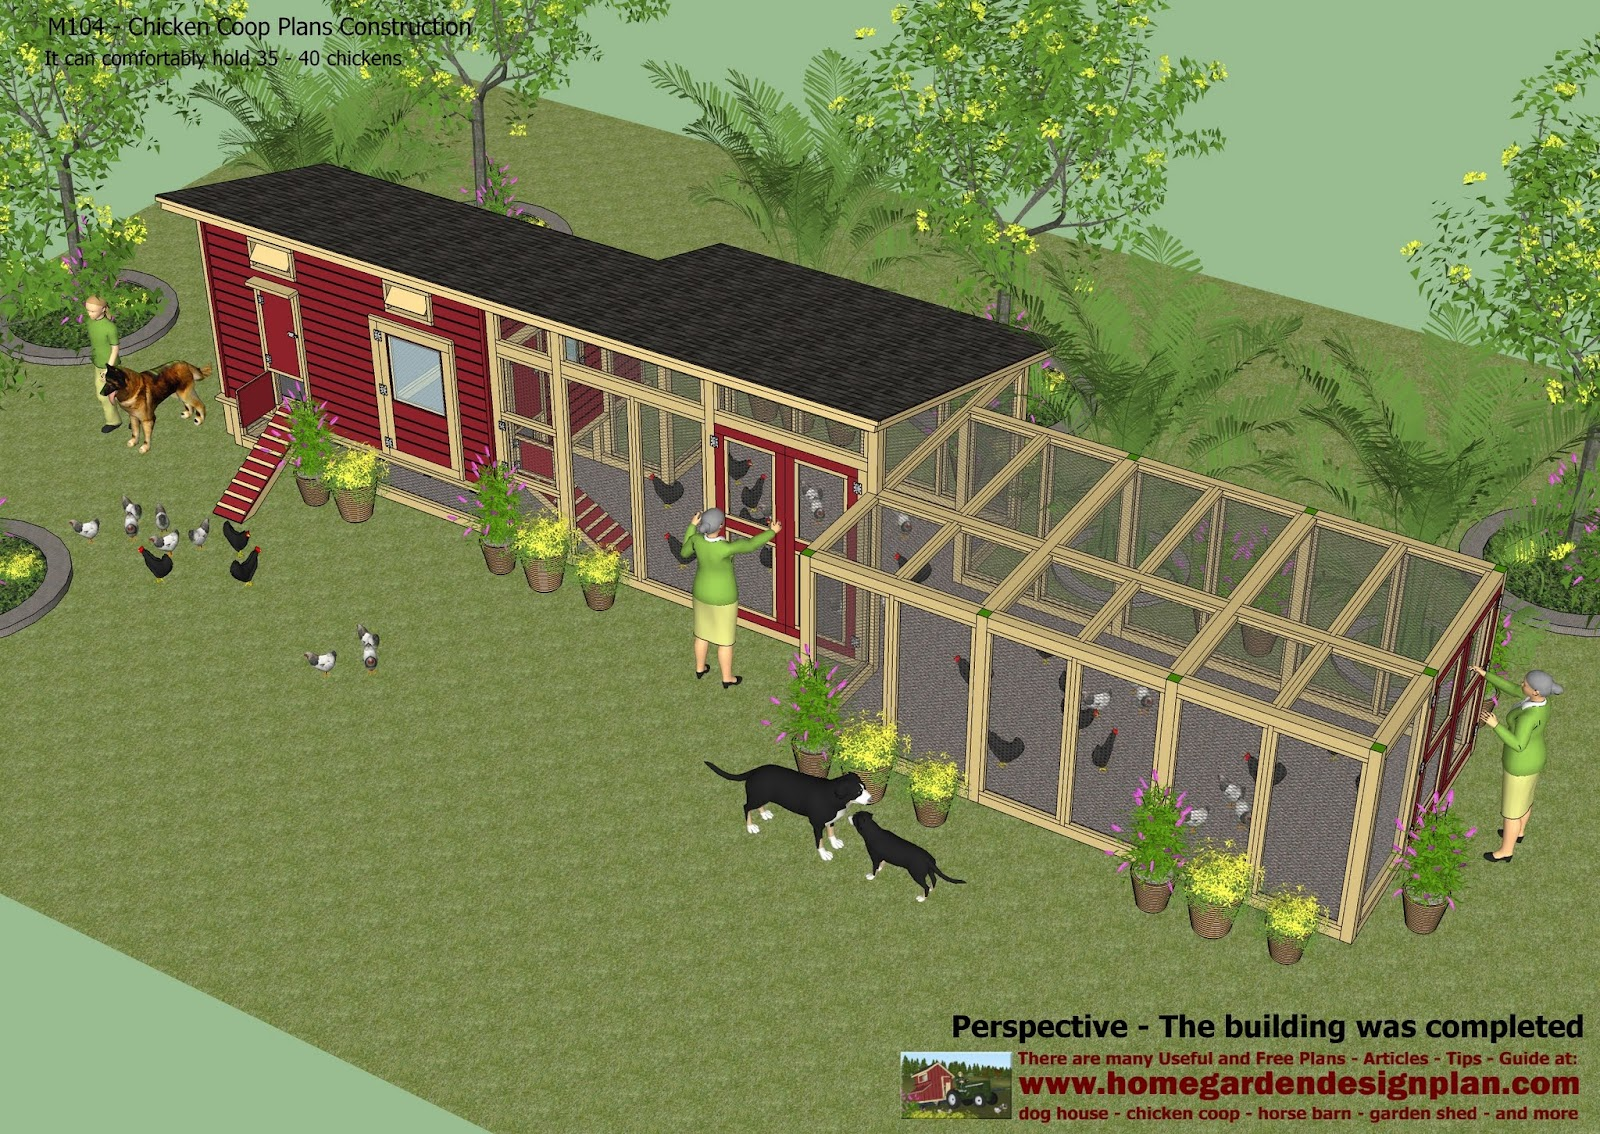 Home garden plans m104 chicken coop plans construction chicken coop design how to build a for Hen house design plans